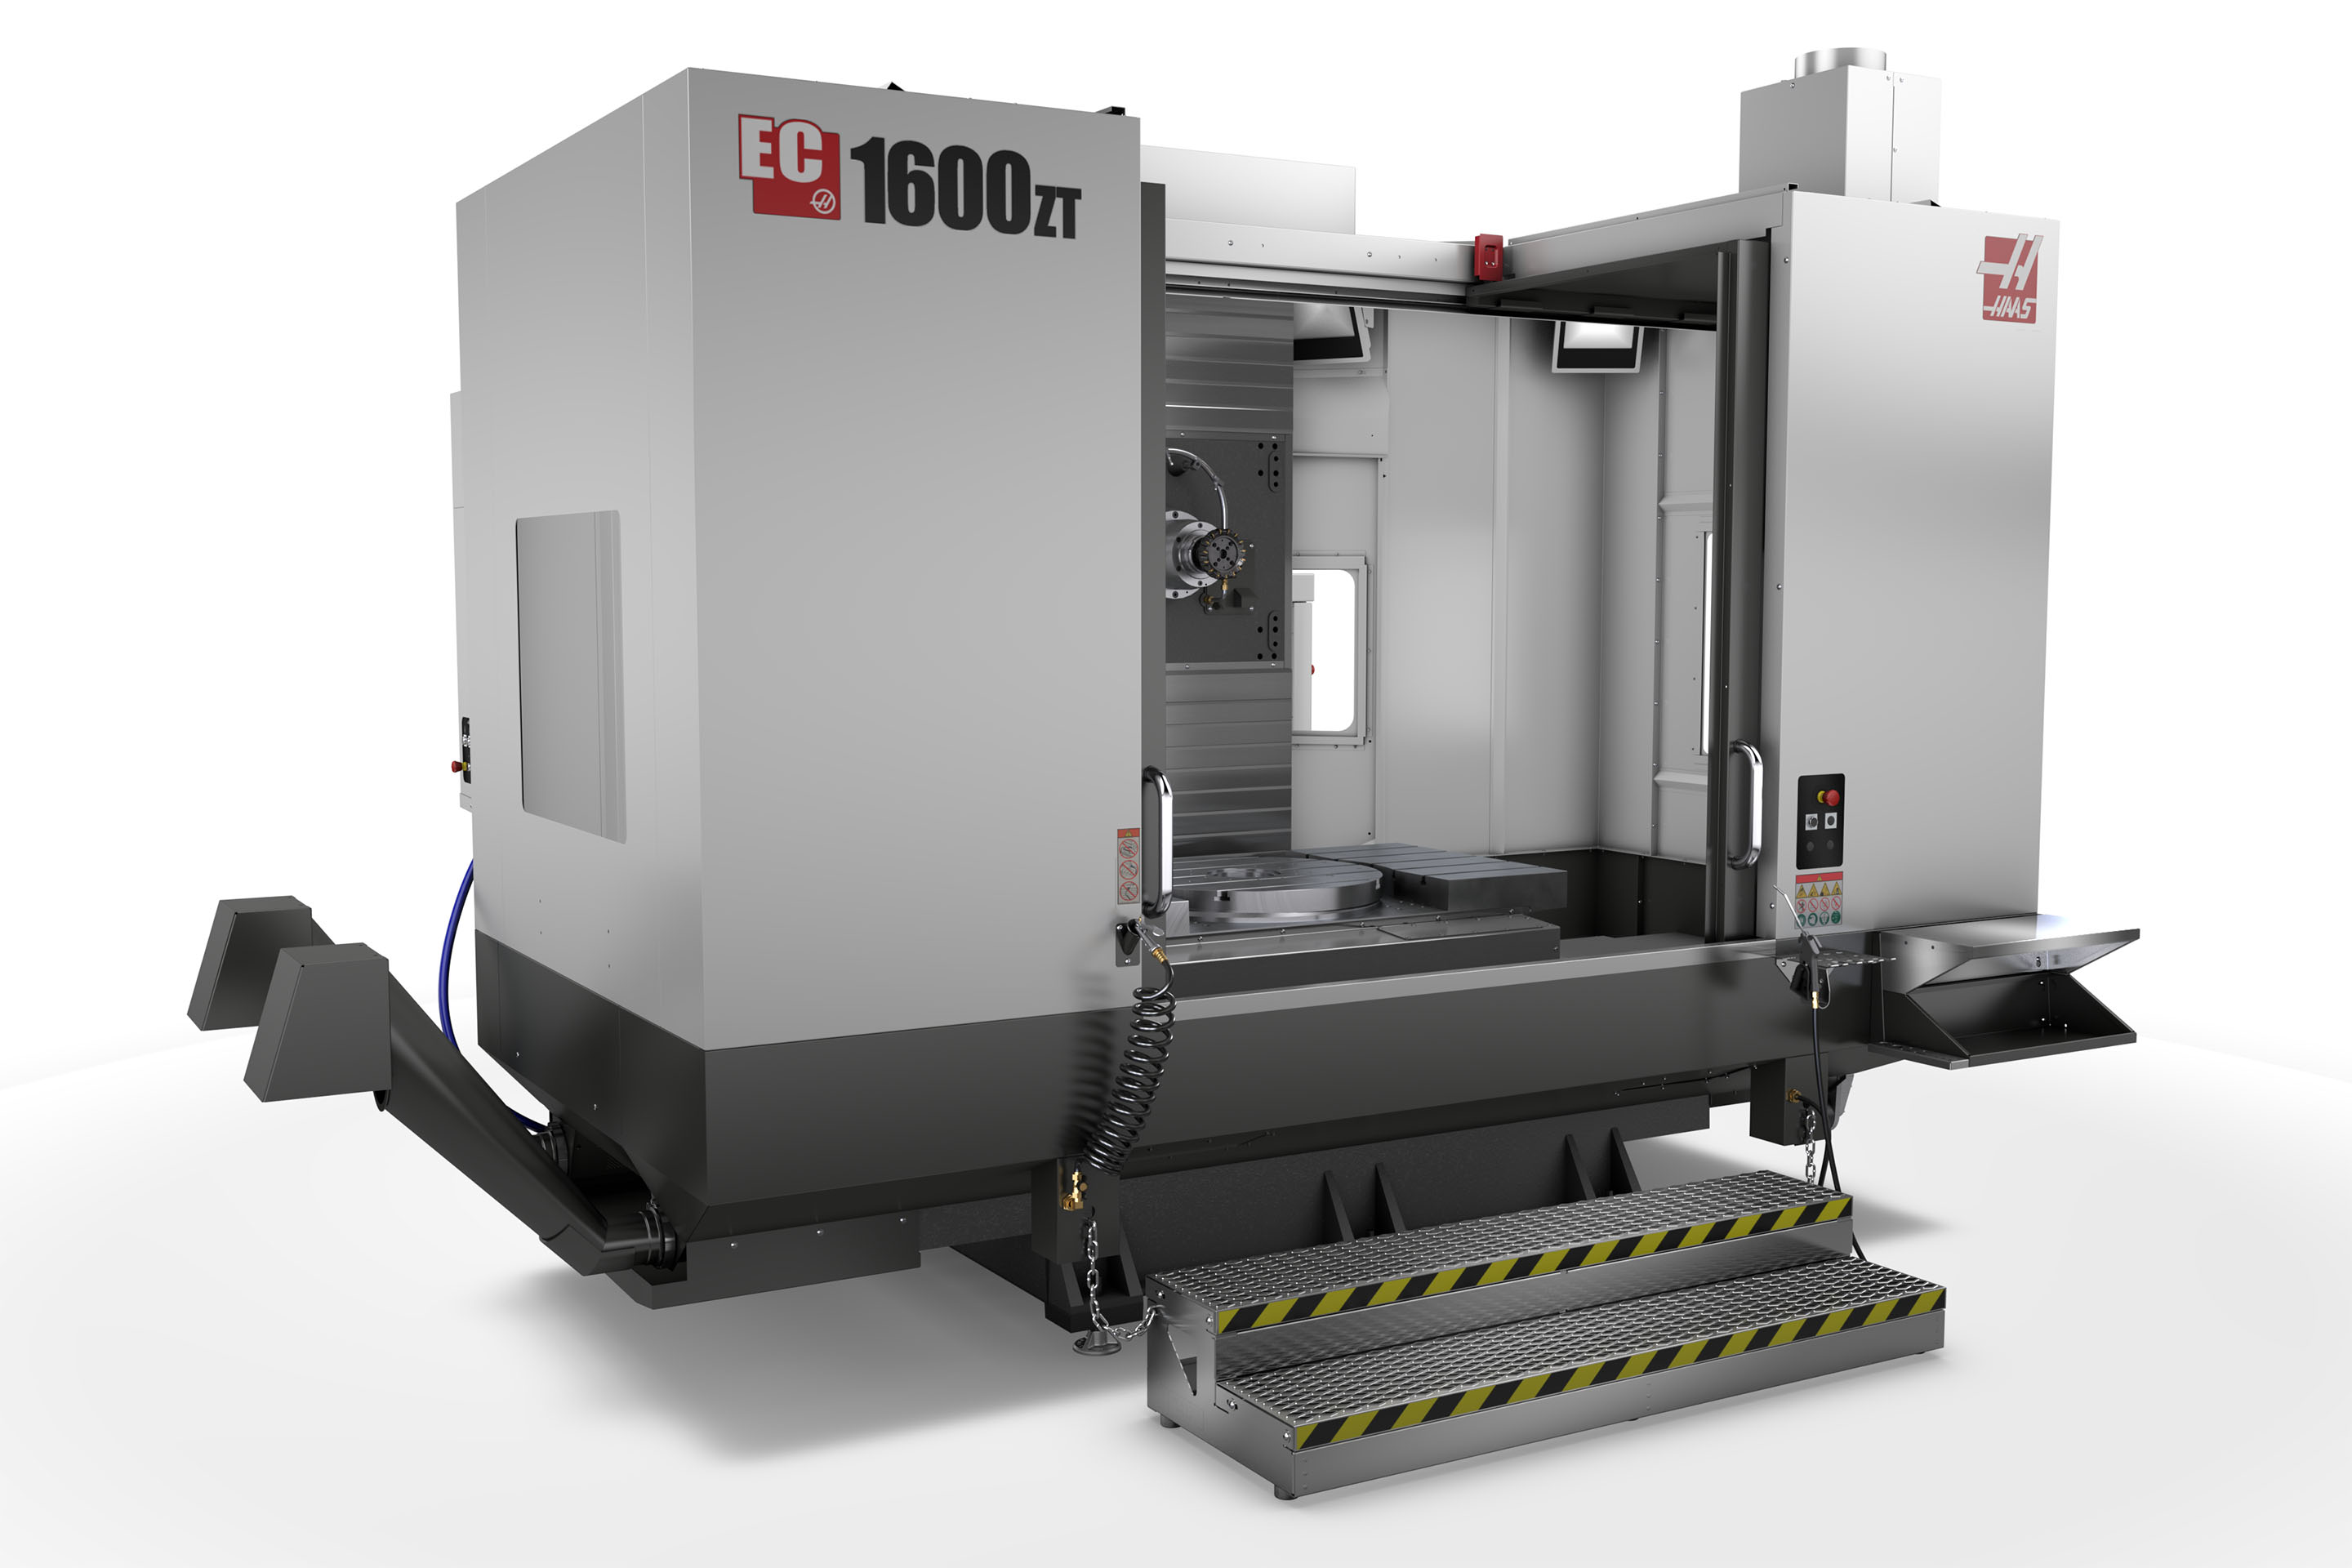 Haas EC 1600ZT photo 002